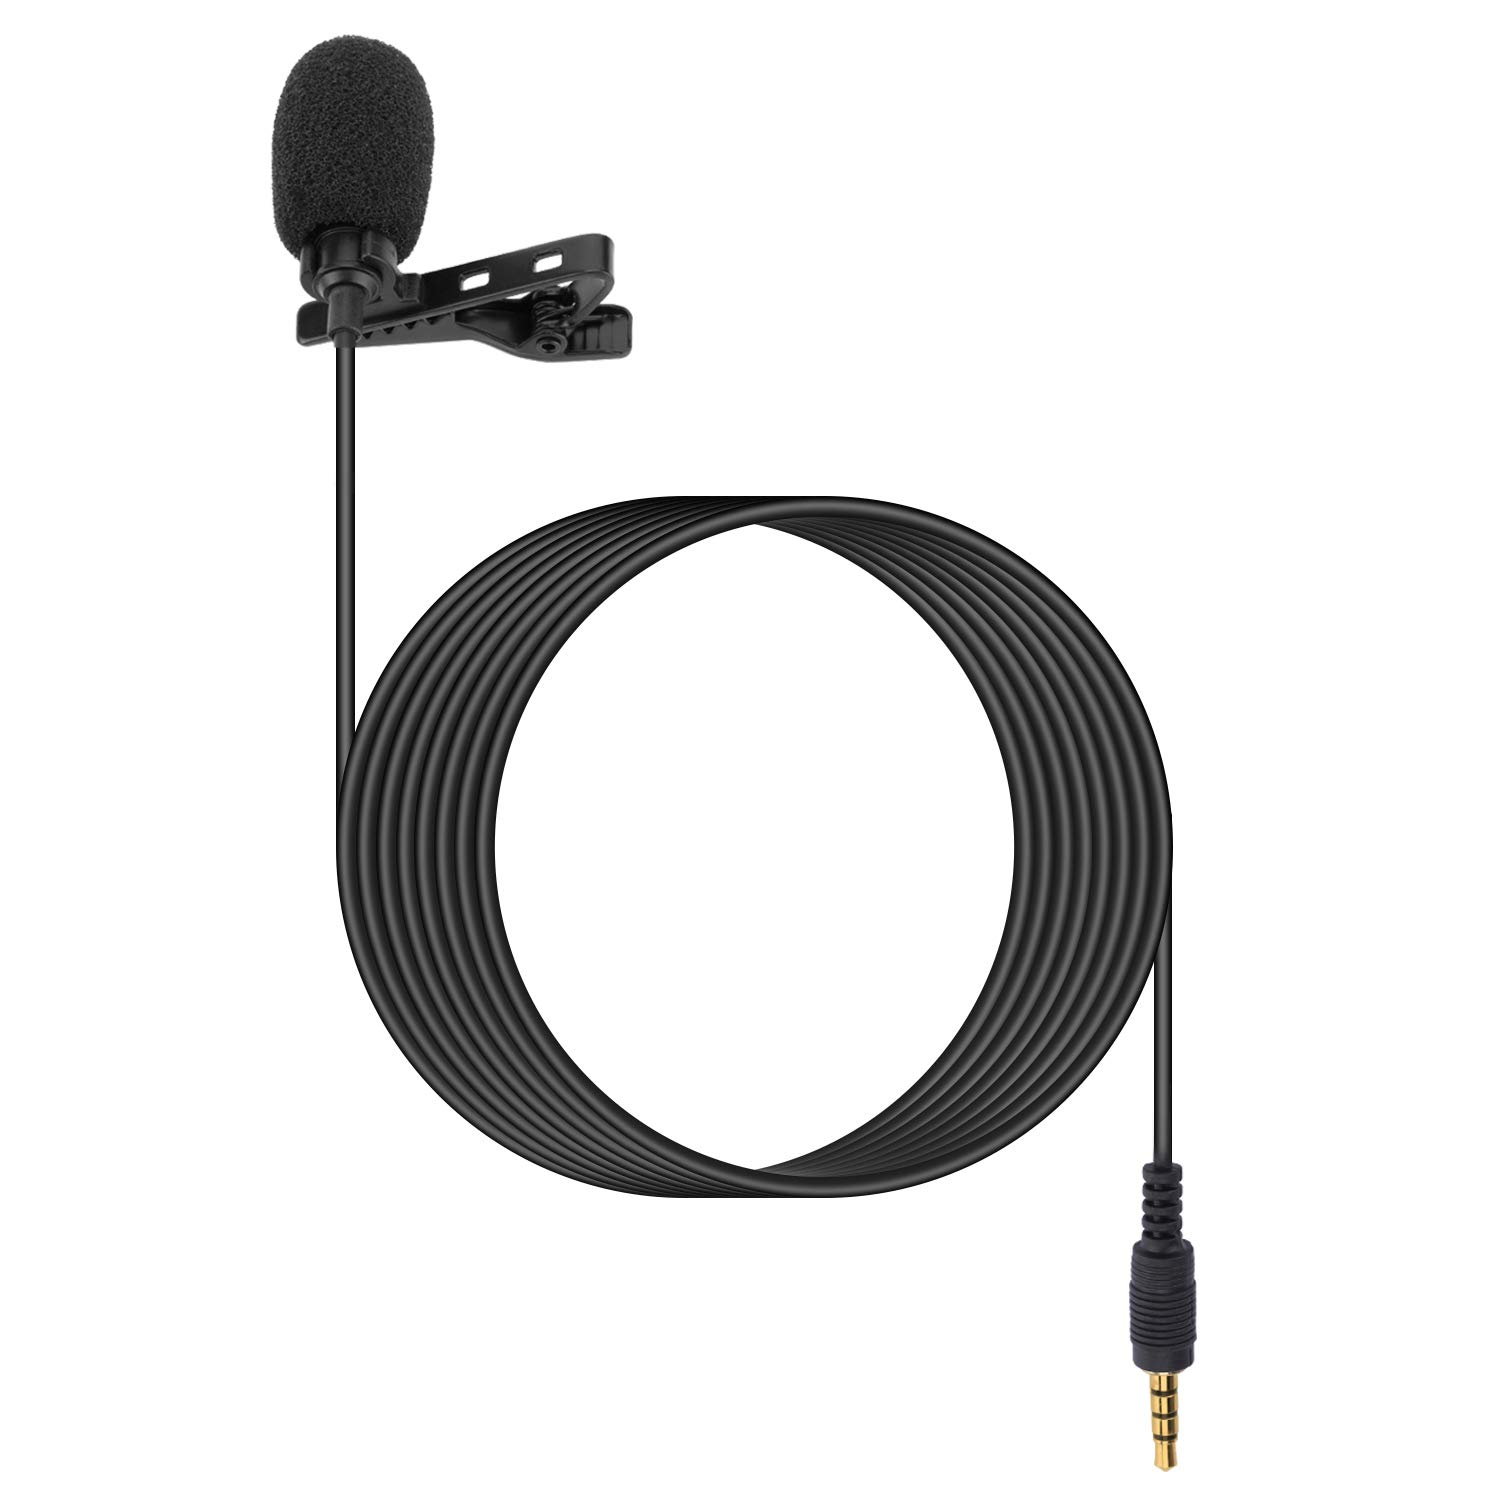 Lavalier Microphone - Portable Mobile Clip Lapel 3.5mm Mini Mic, Used for For Android phones,recording, video call(Not for iPhone)